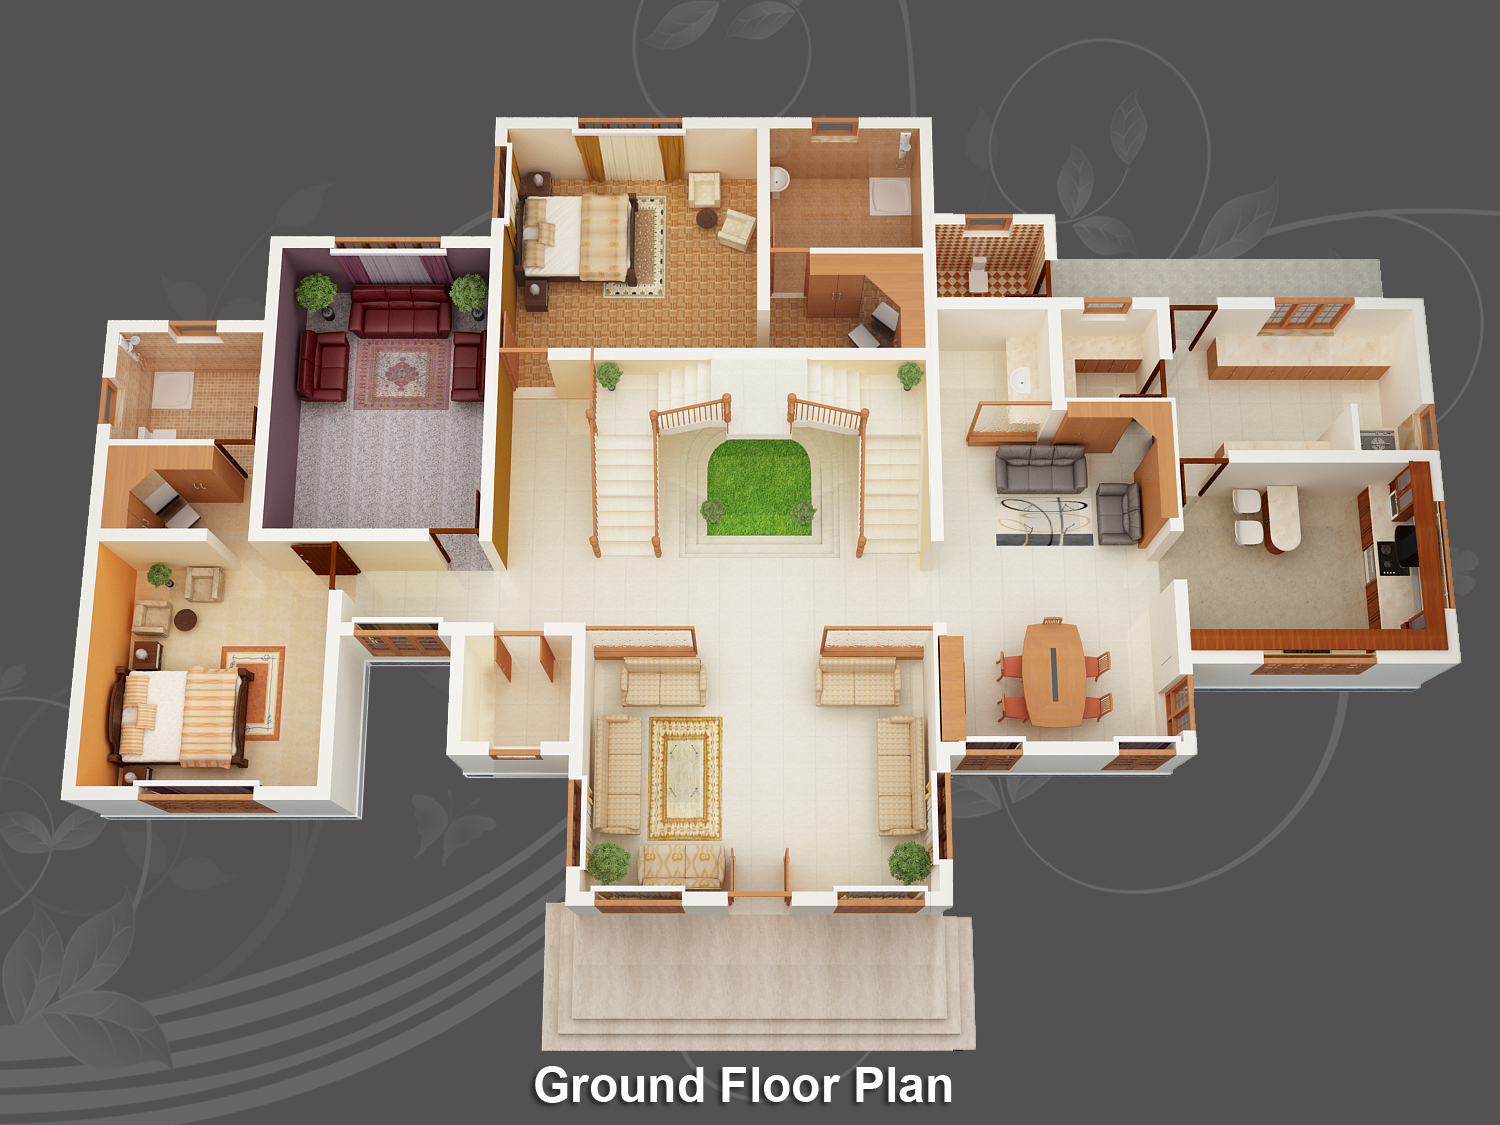 Evens construction pvt ltd 3d house plan 20 05 2011 Home plan 3d